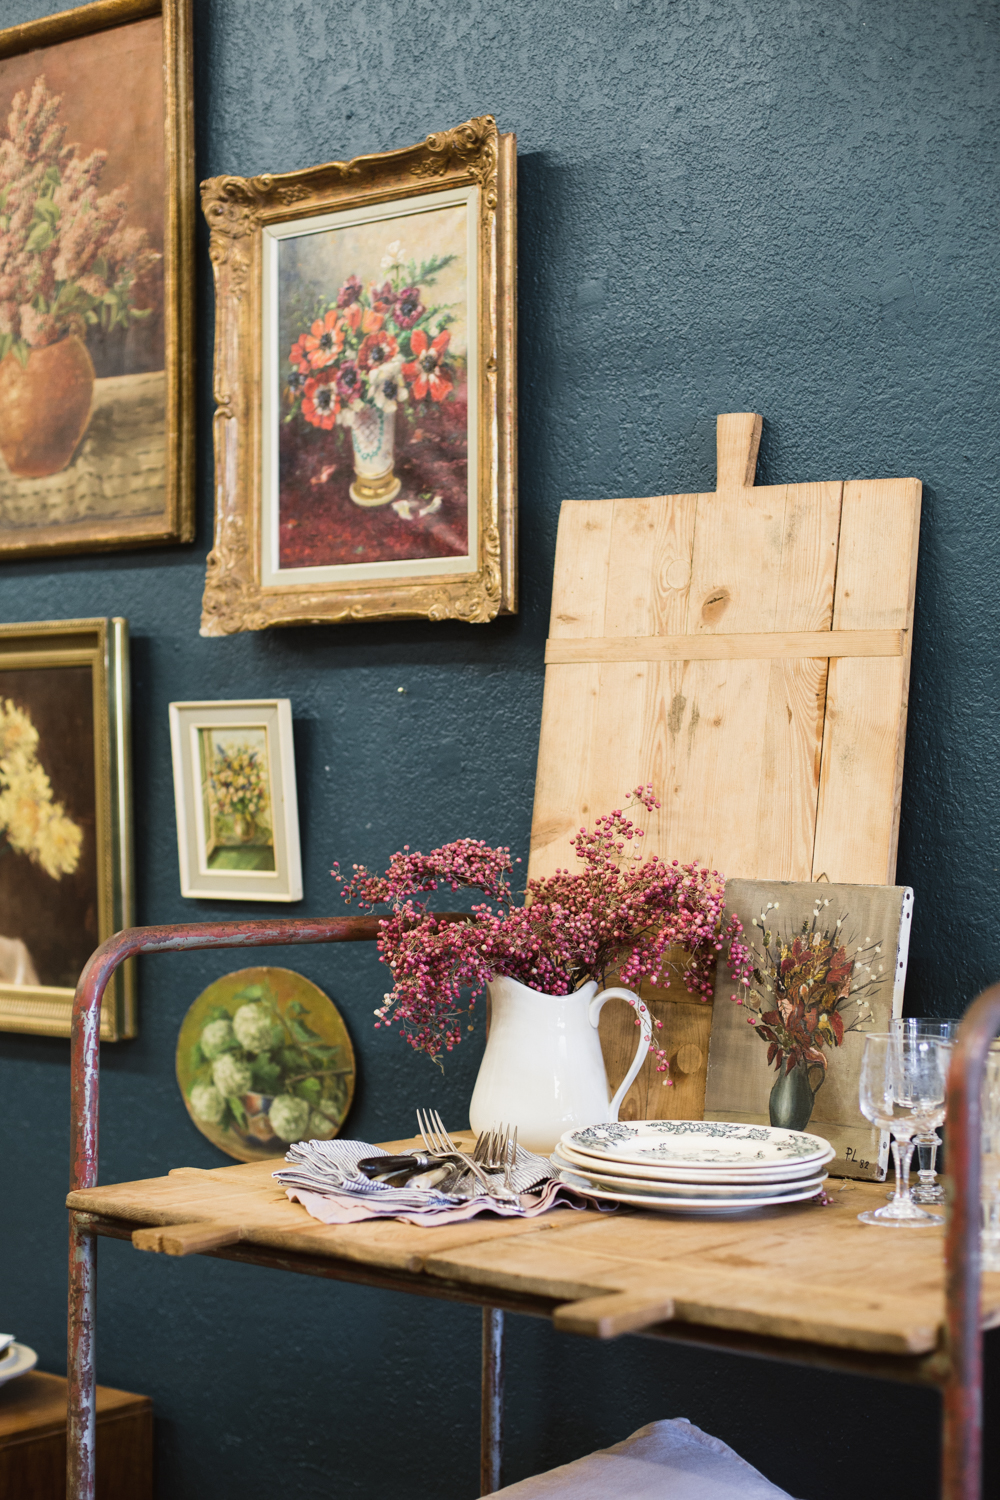 Style Sessions - Prop Styling Workshop with Heather Bullard